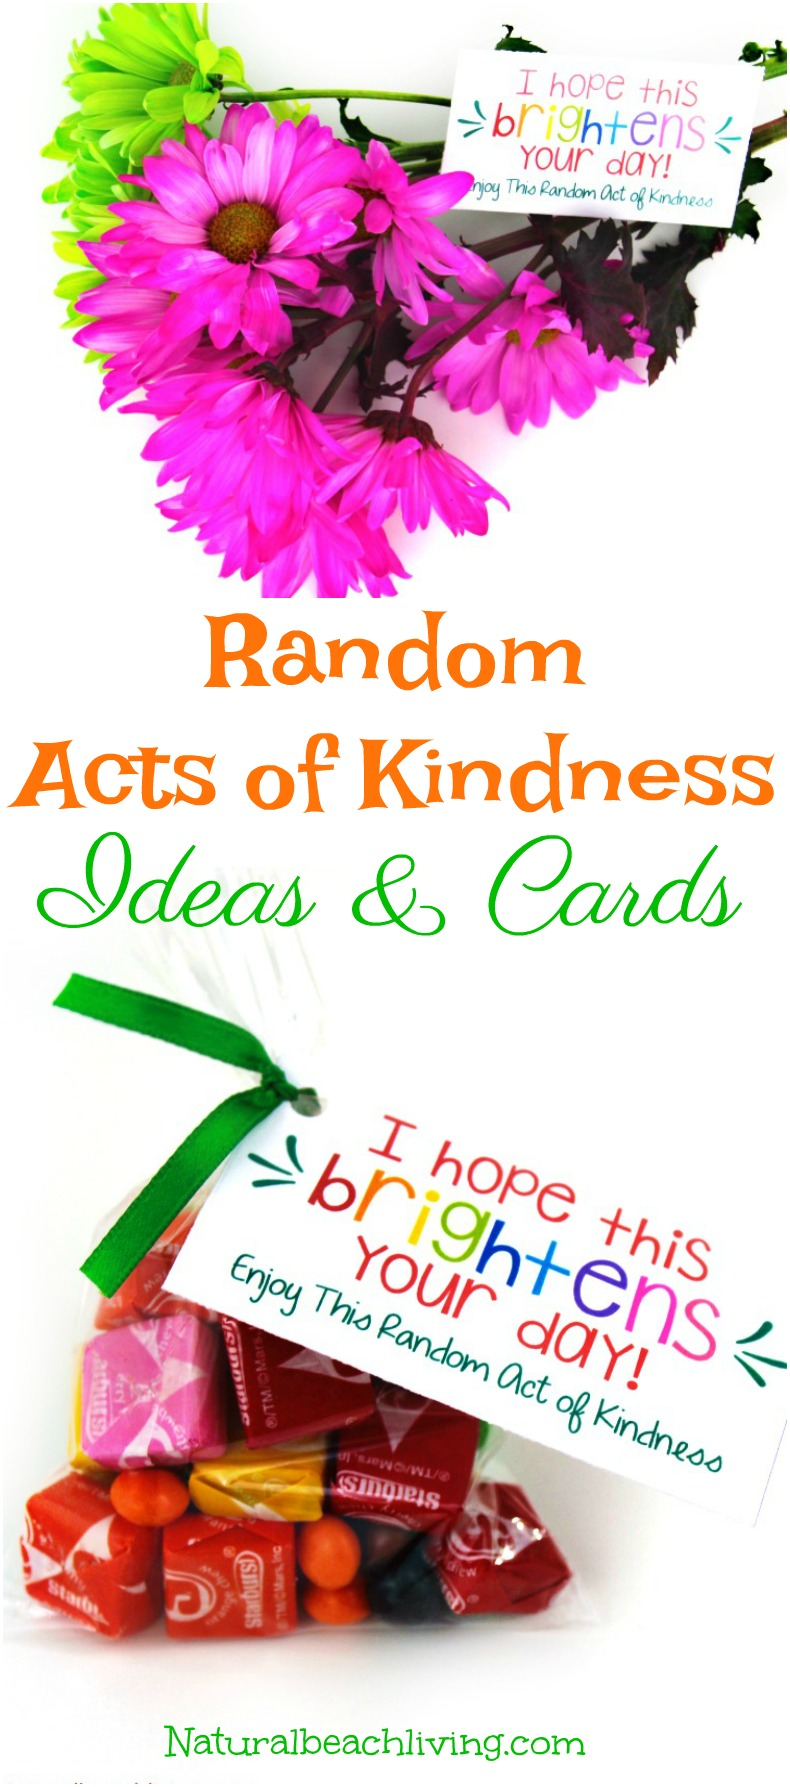 Amazing Random Acts of Kindness Day Ideas To Try Right Now, Random Acts of Kindness Day 2018, National Kindness Day, Kindness Week 2018, Acts of Kindness Ideas, World Kindness Day Activities, Random Acts of Kindness Ideas, Ideas for Random Acts of Kindness, Random Act of Kindness and Random acts of kindness for Kids